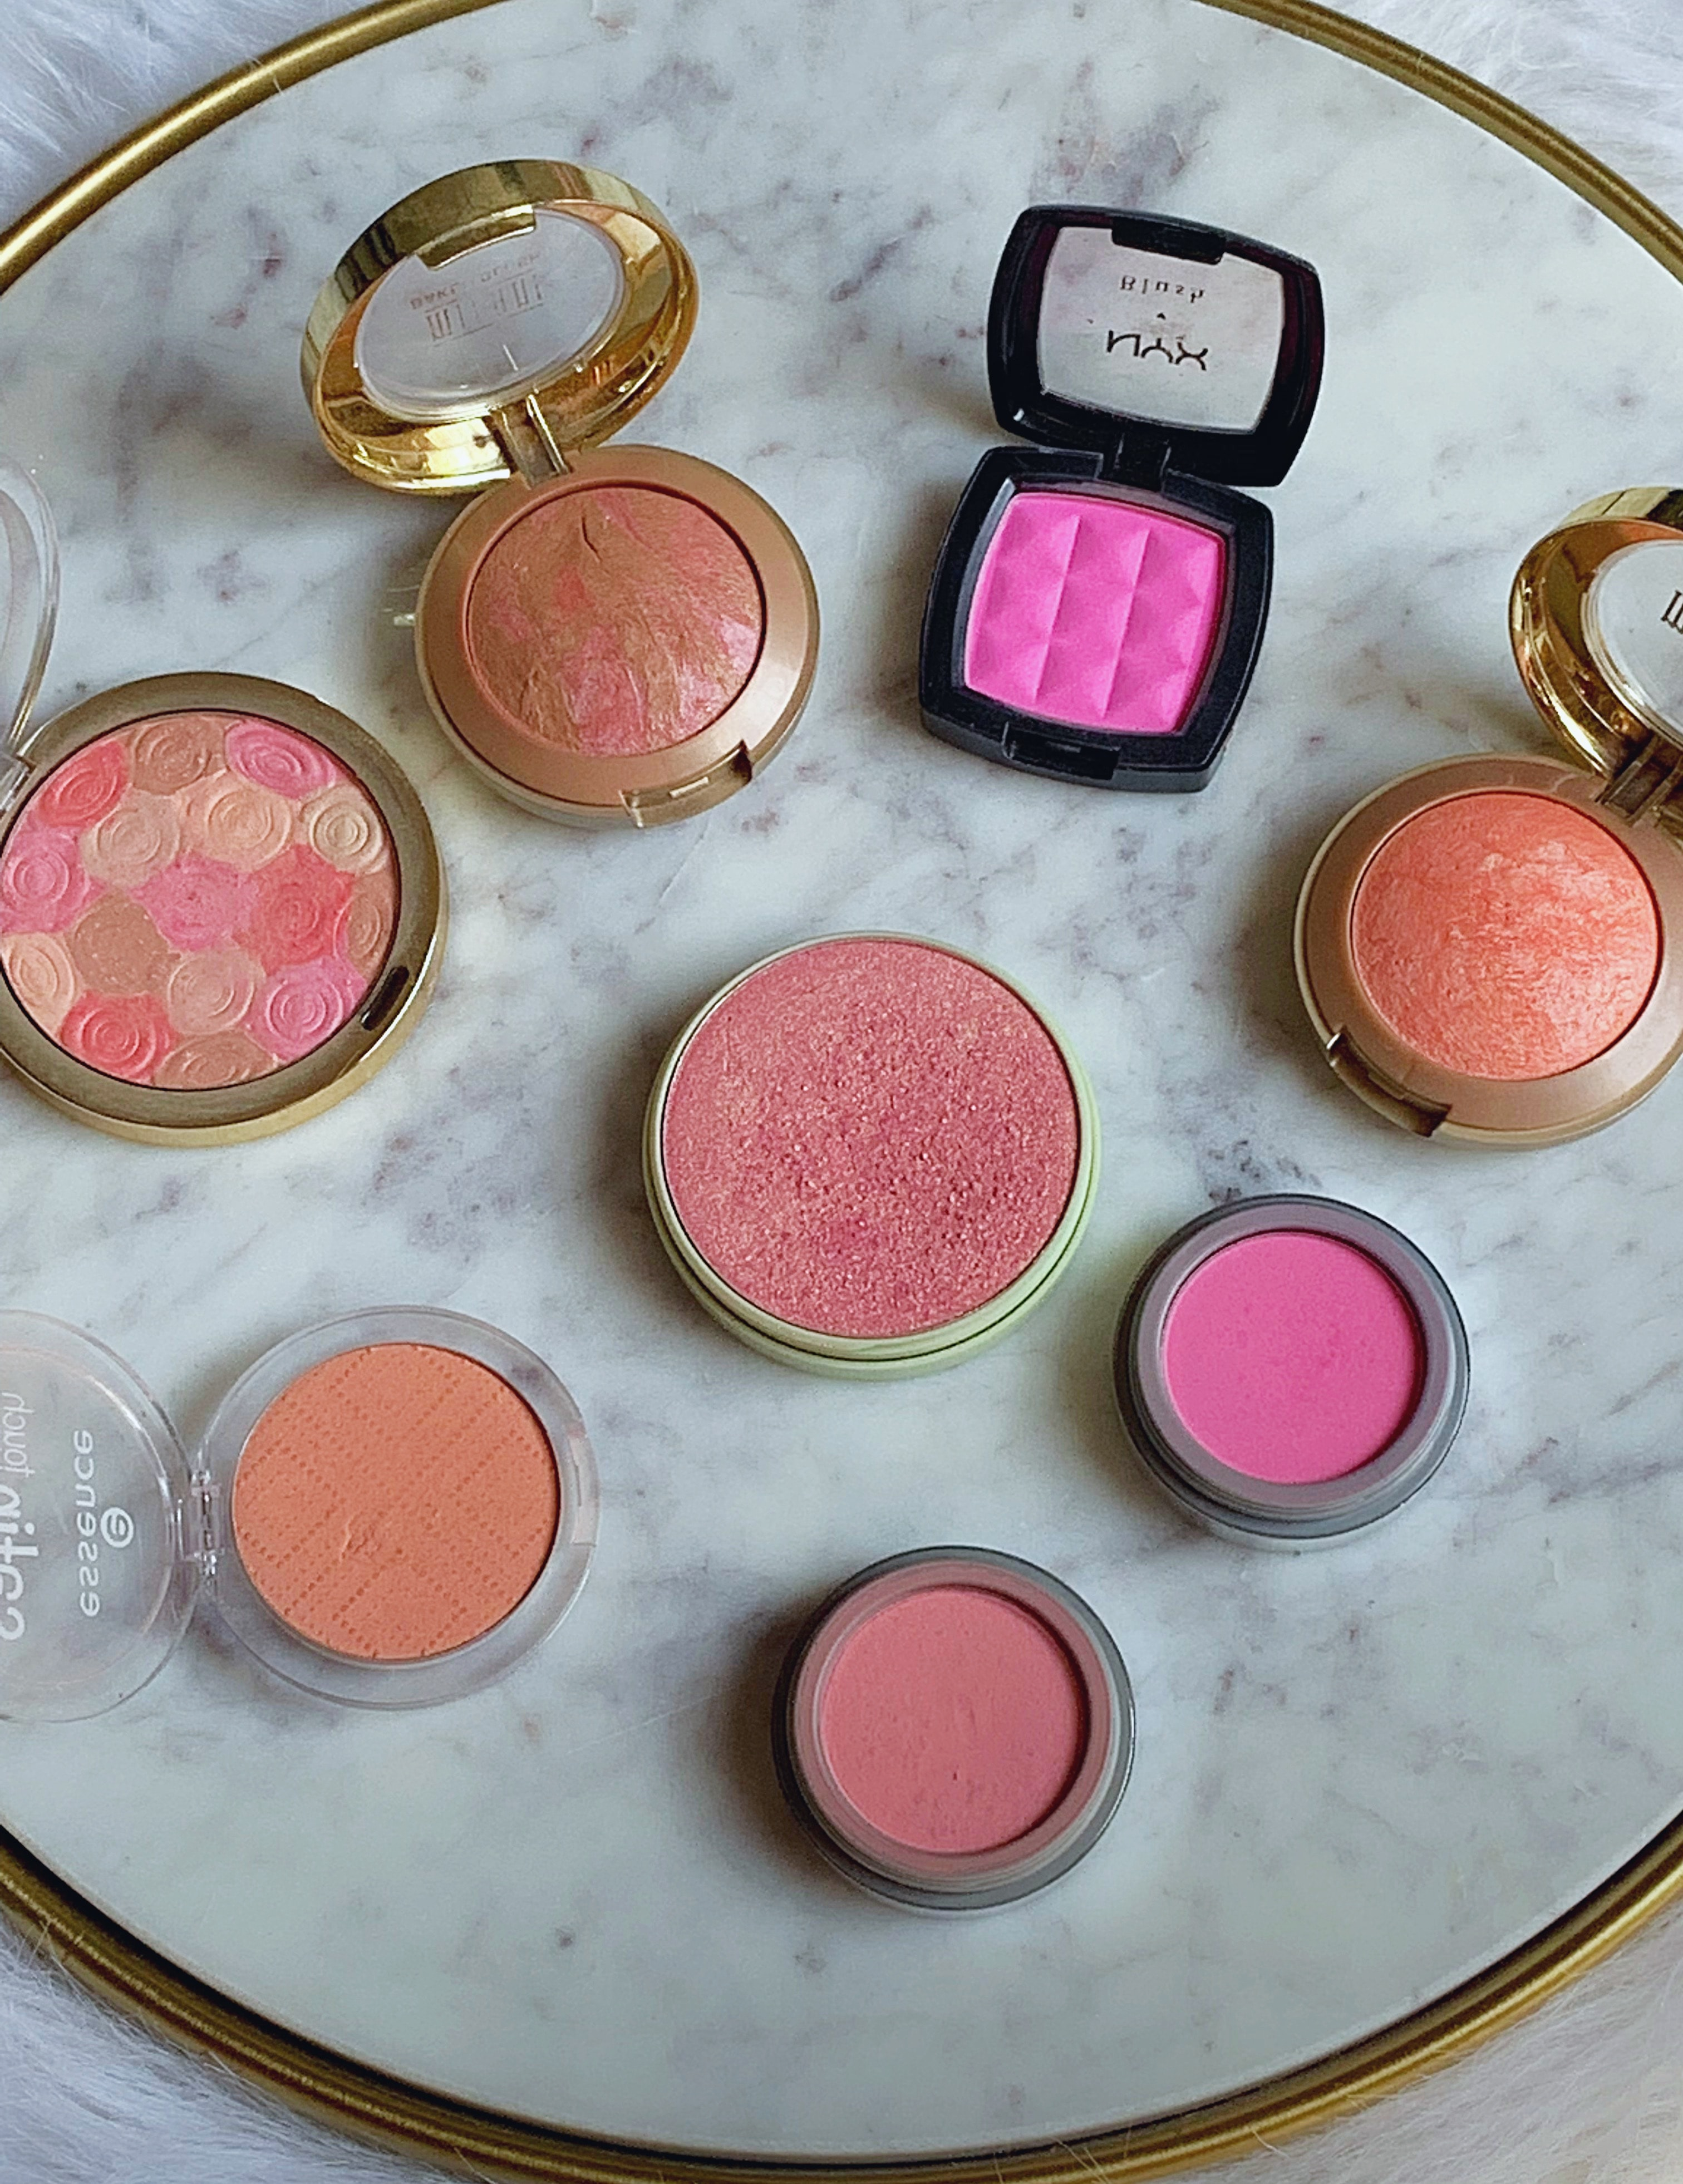 On the hunt for the best affordable blush? Check out the 10 Best Drugstore Blushes Under $10! You'll love these gorgeous matte, cream, and shimmer blushes that add a natural glow and pretty color to the cheeks. #drugstoreblush #drugstoremakeup #blush #makeup